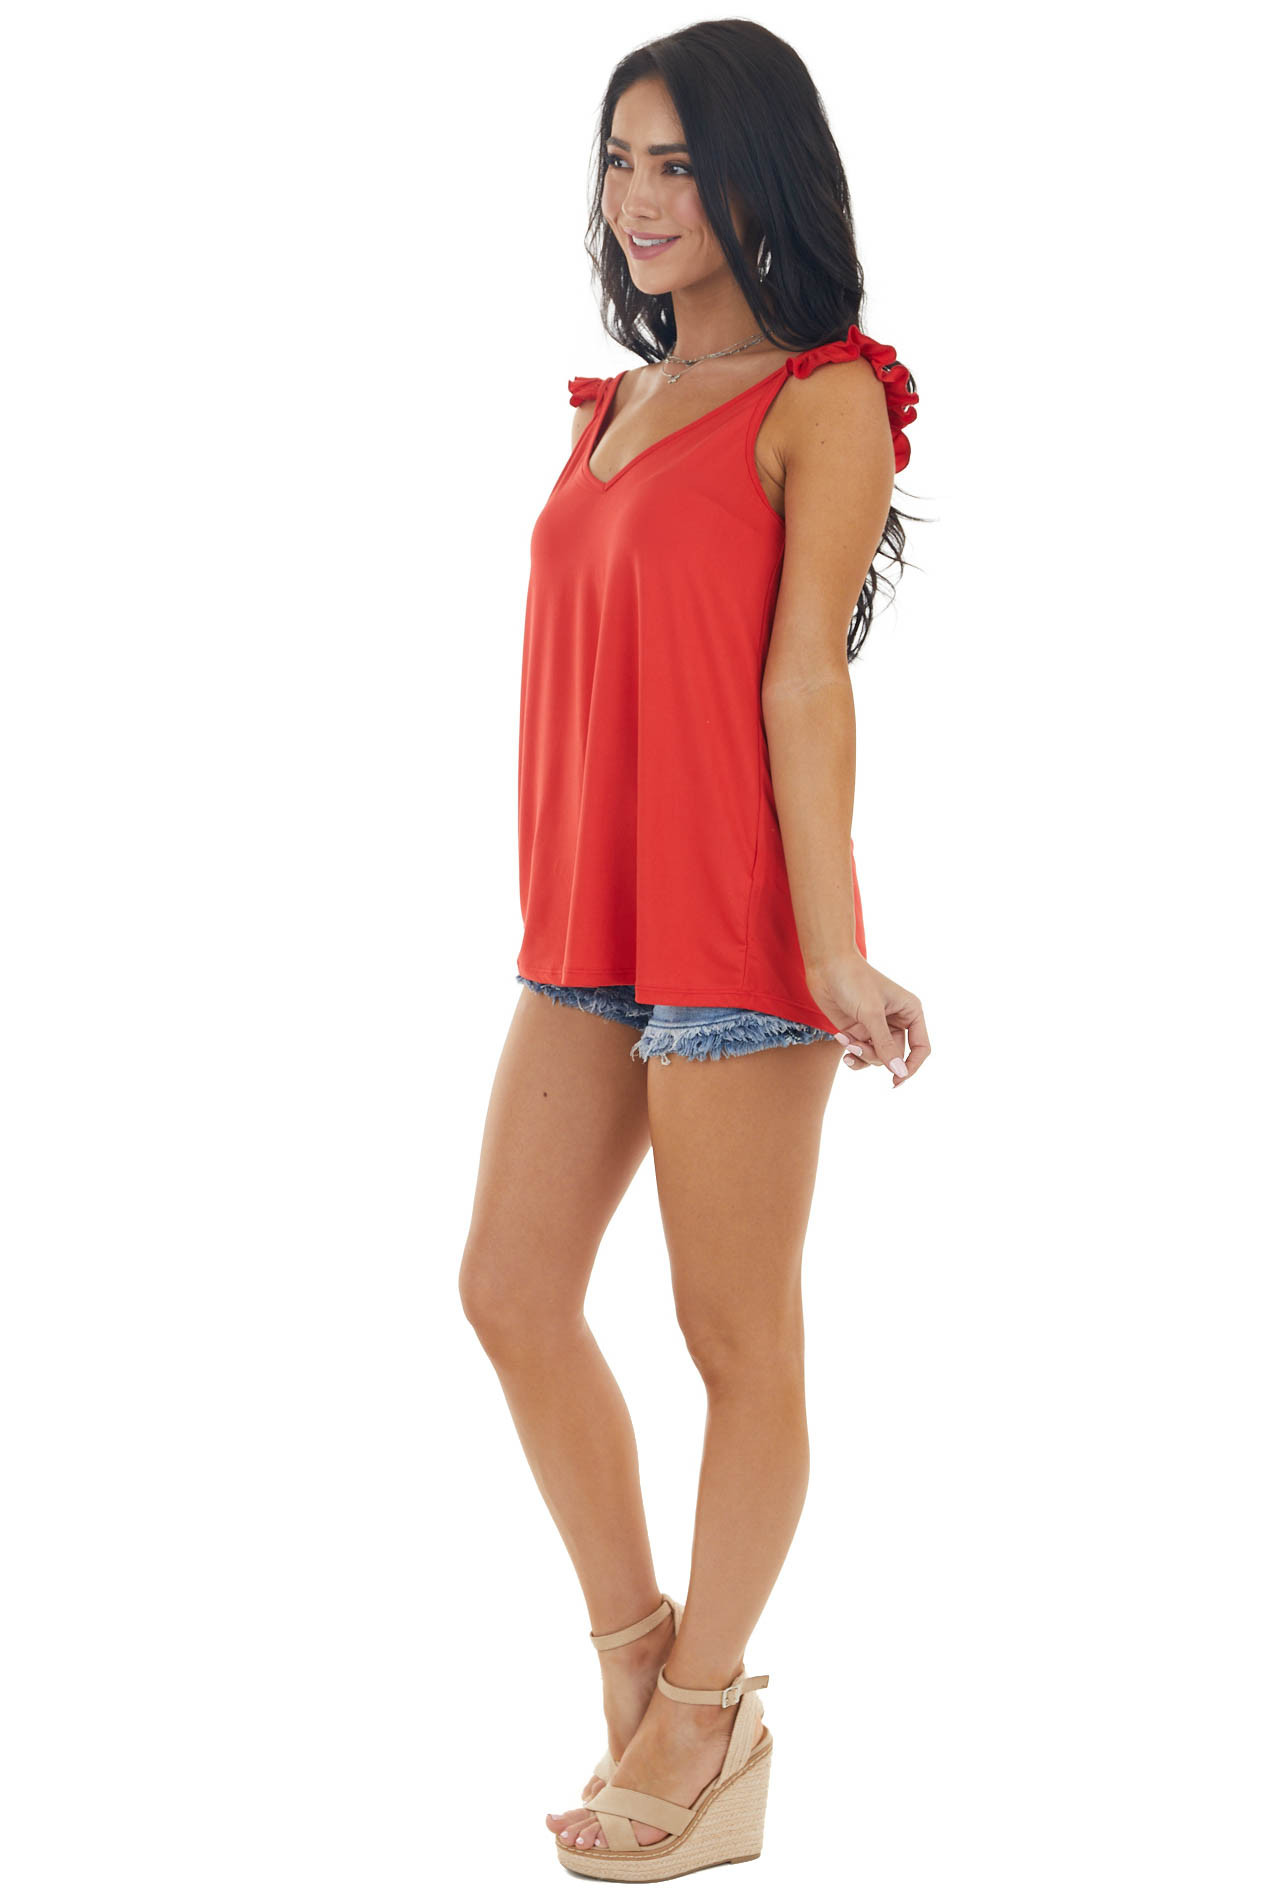 Candy Apple Red Split Ruffled Strap Knit Tank Top